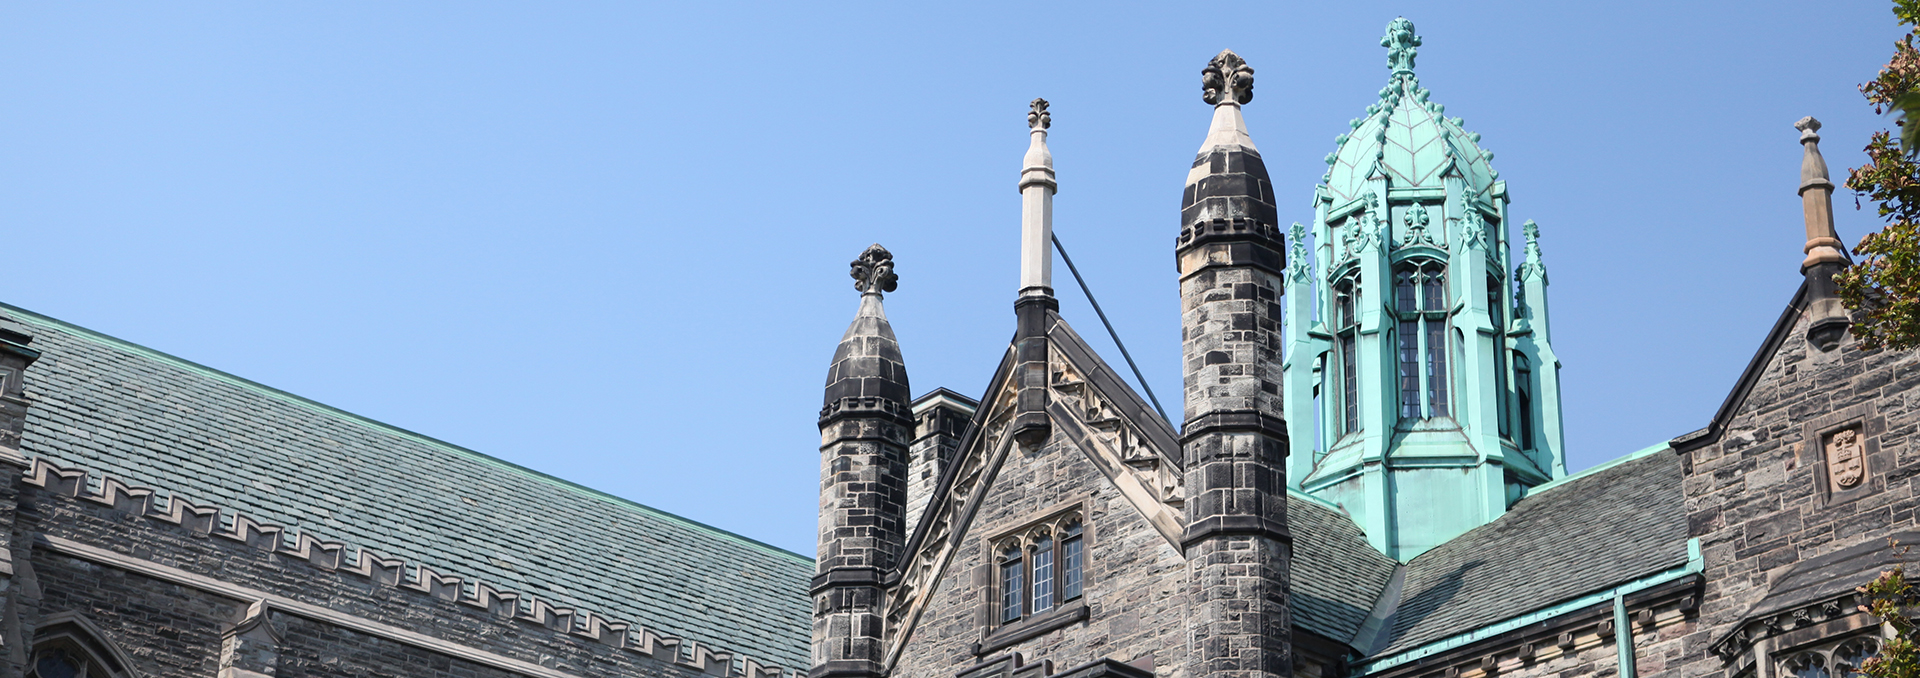 Roof of Trinity College building